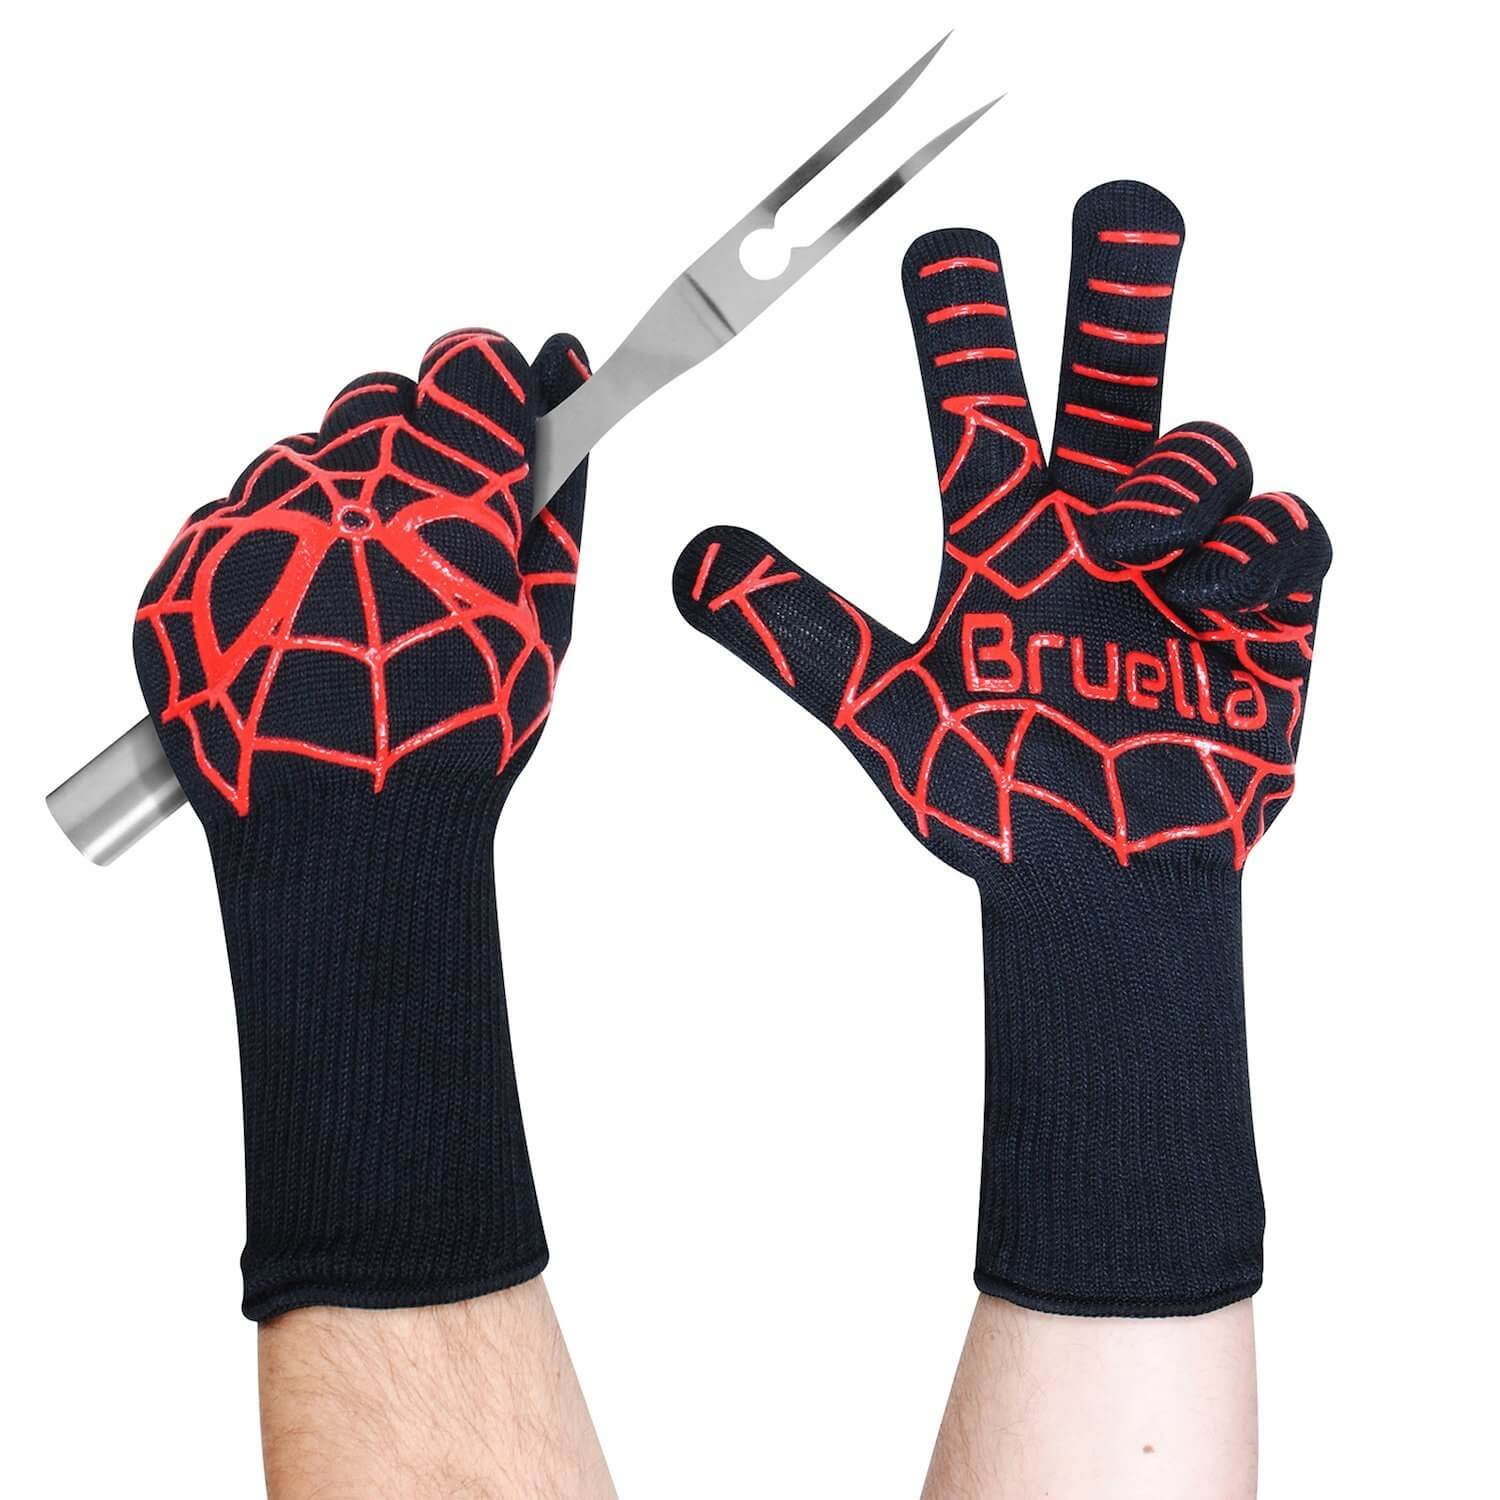 Bruella Heat Resistant Grilling Gloves Review